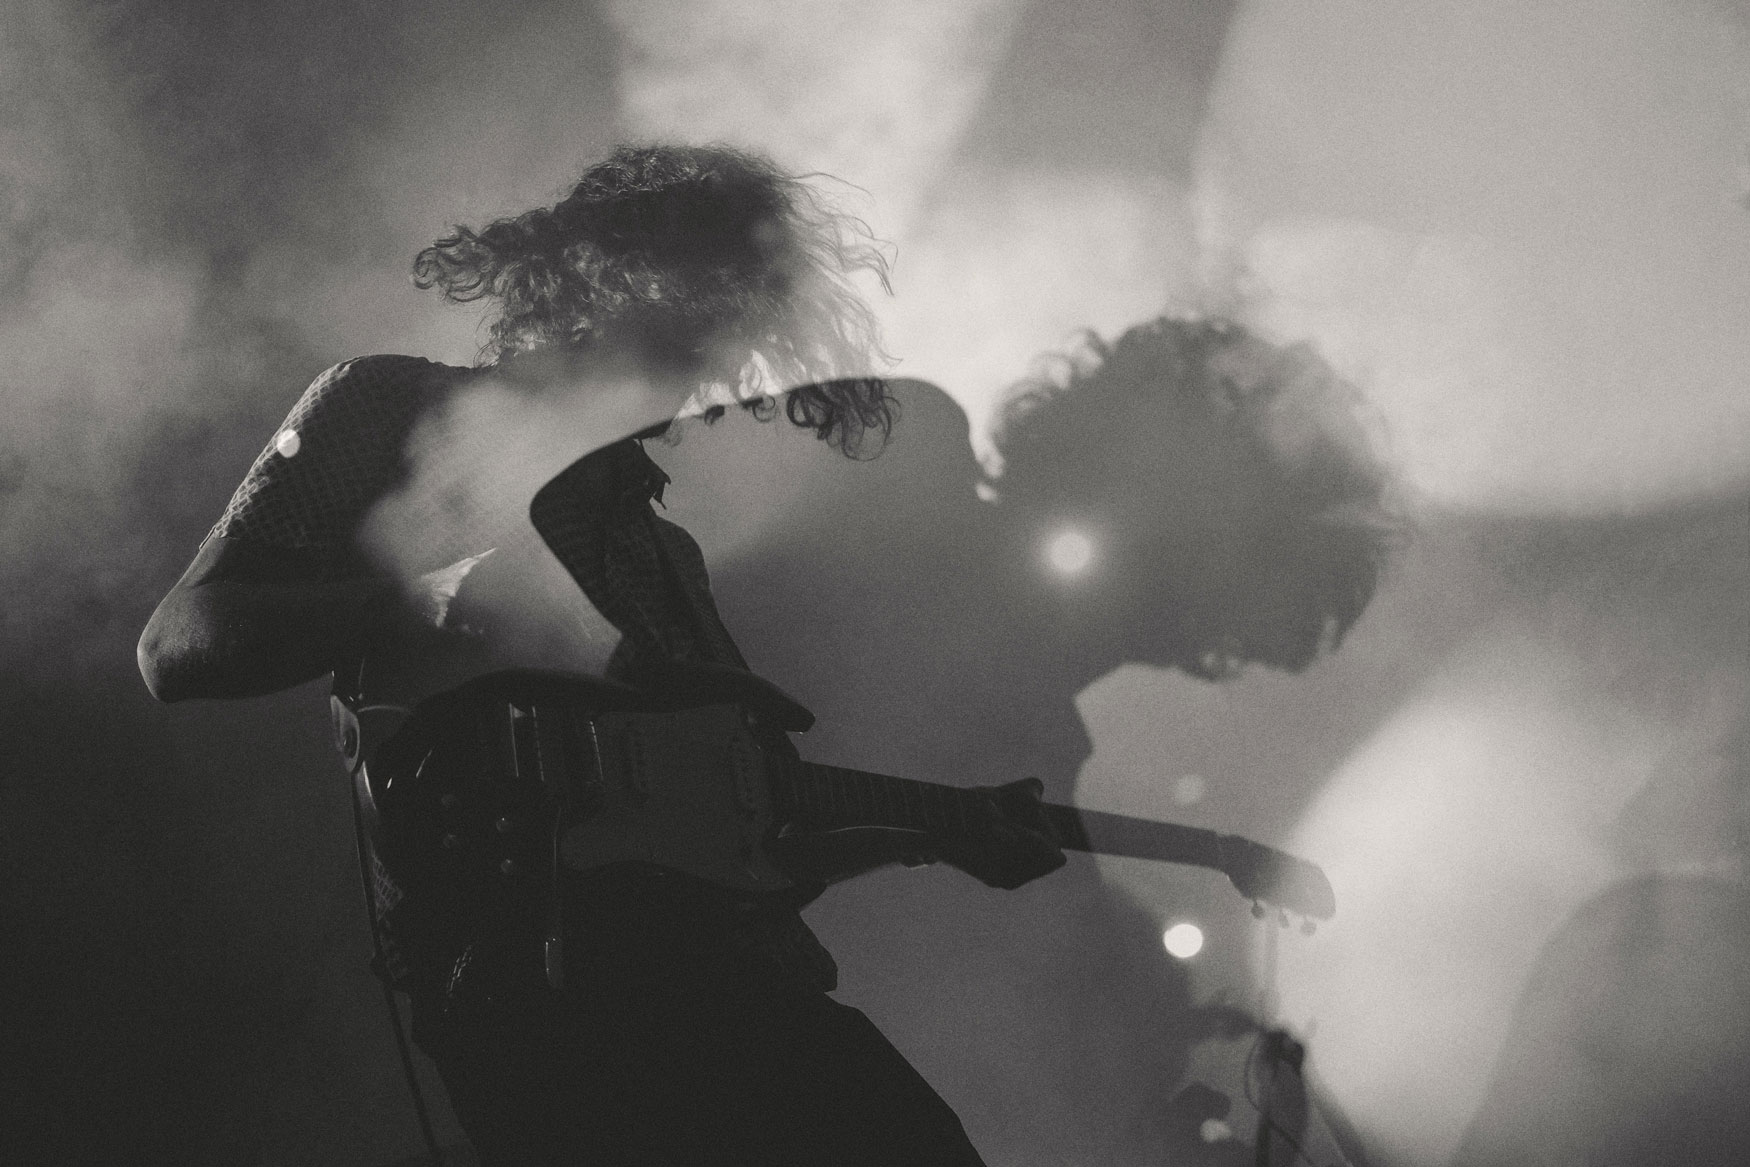 Guitarist on stage, shadow play - contribution image